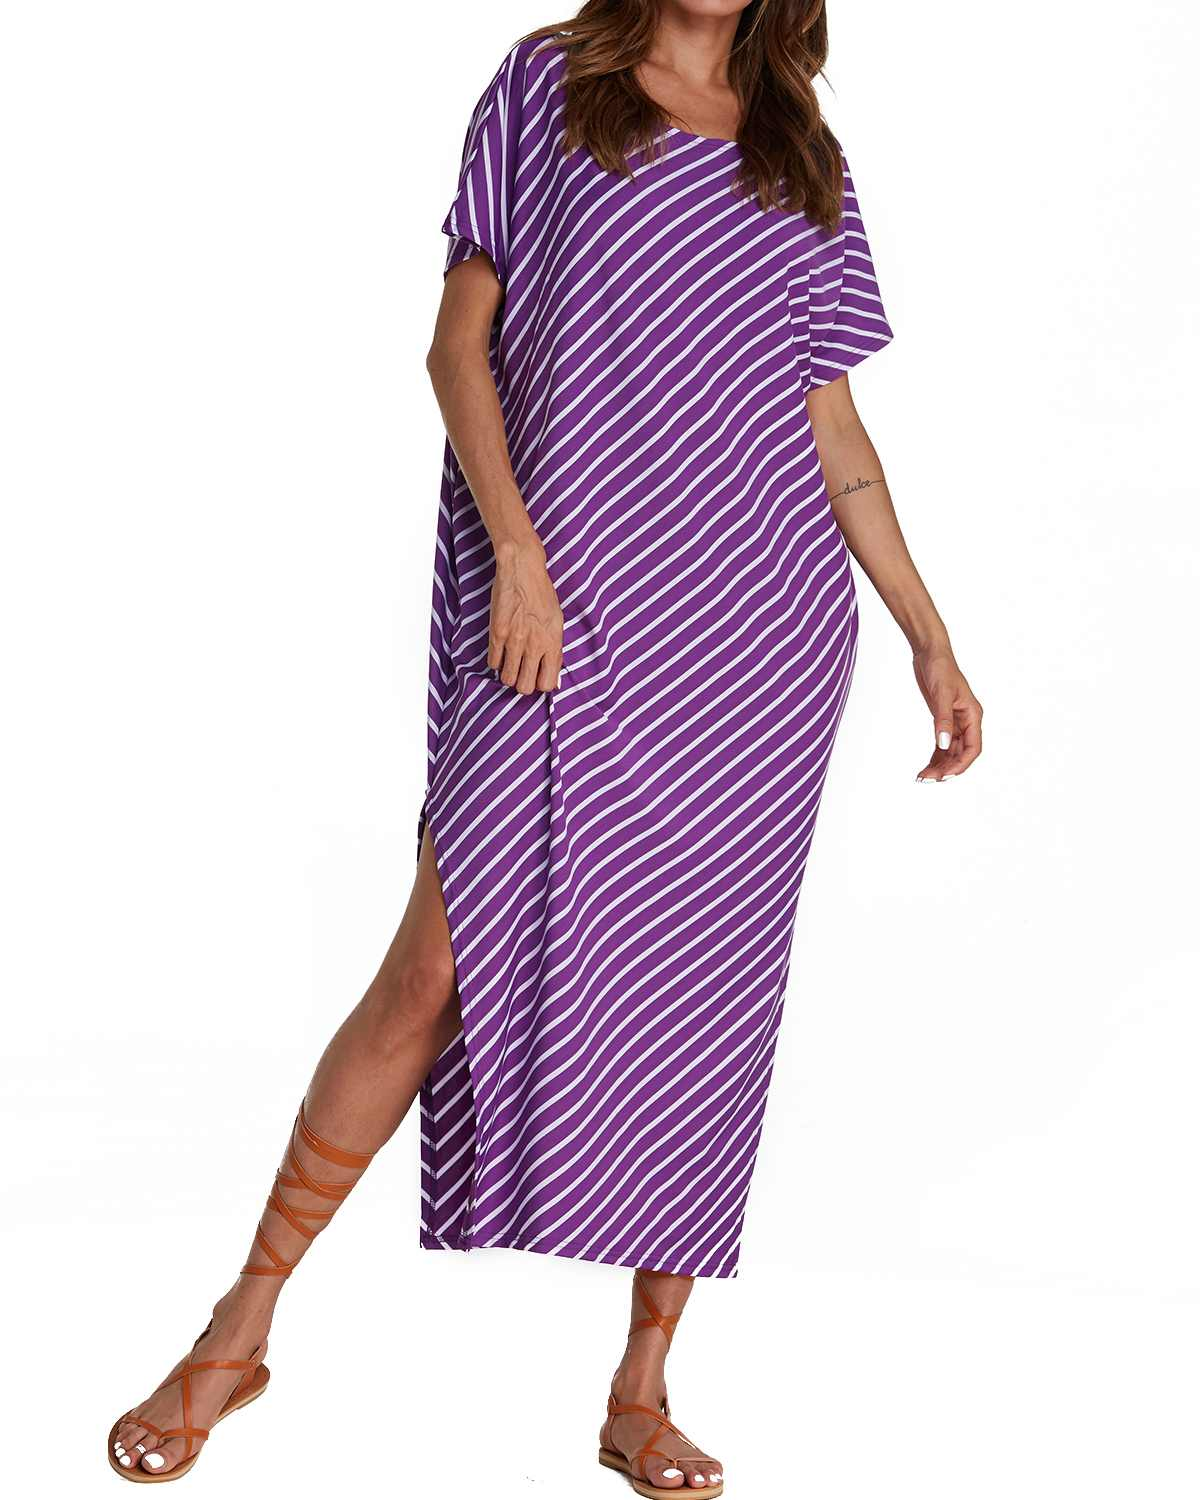 Summer Striped Split Party Dresses  Women ZANZEA 2019 Casual Loose Half Bat Sleeve Round Neck Long Bodycon Beach Dress Plus Size